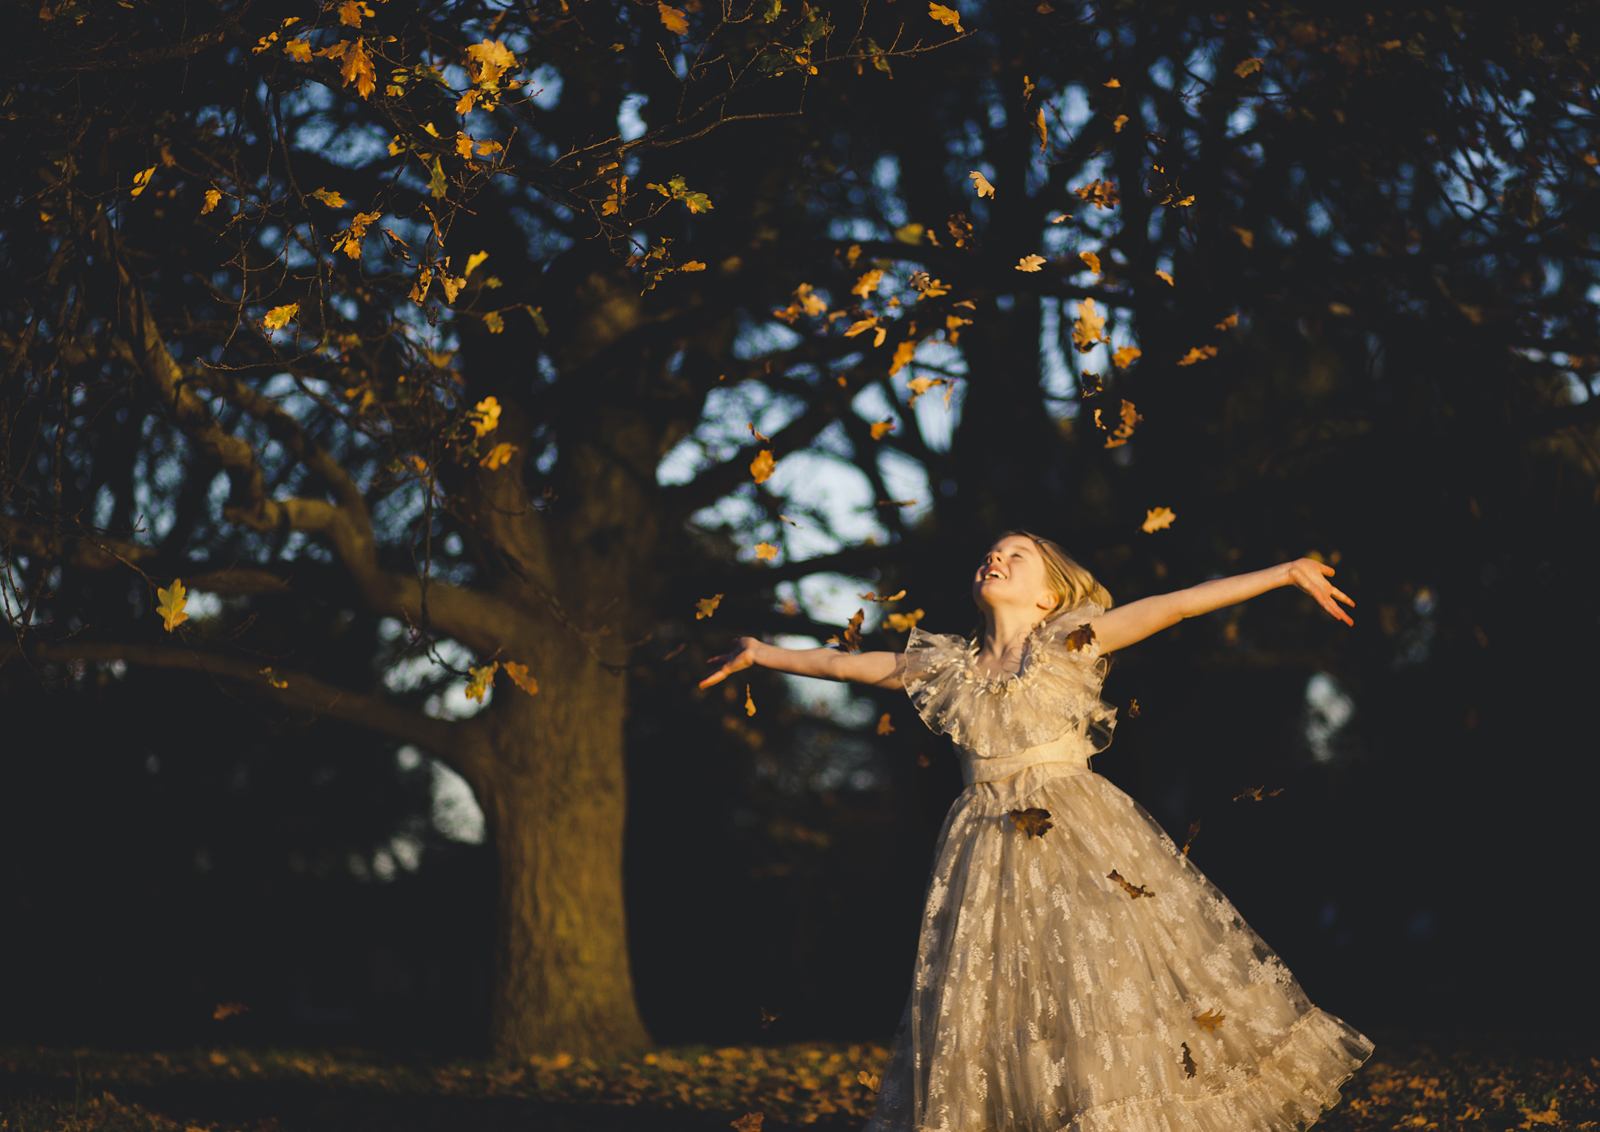 Tween girl throwing Autumn leaves in the air